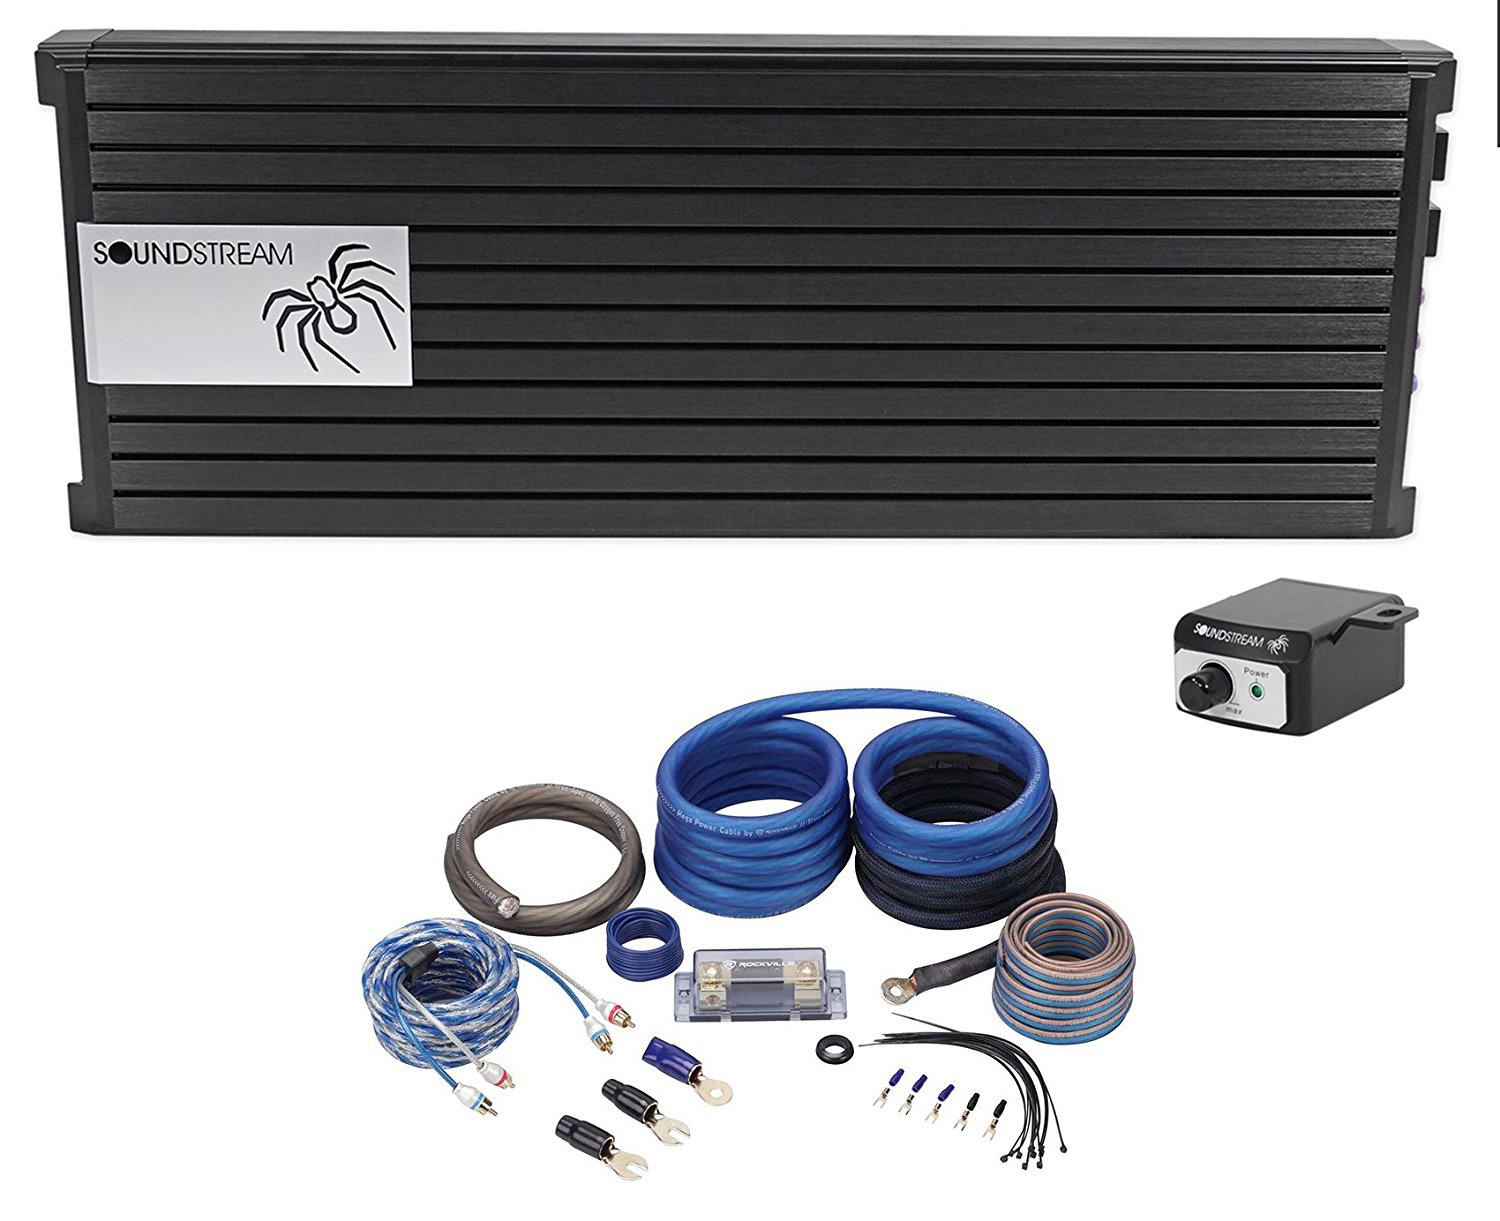 Buy Soundstream RUB1 1600D 1600 Watt Rms Mono Amplifier